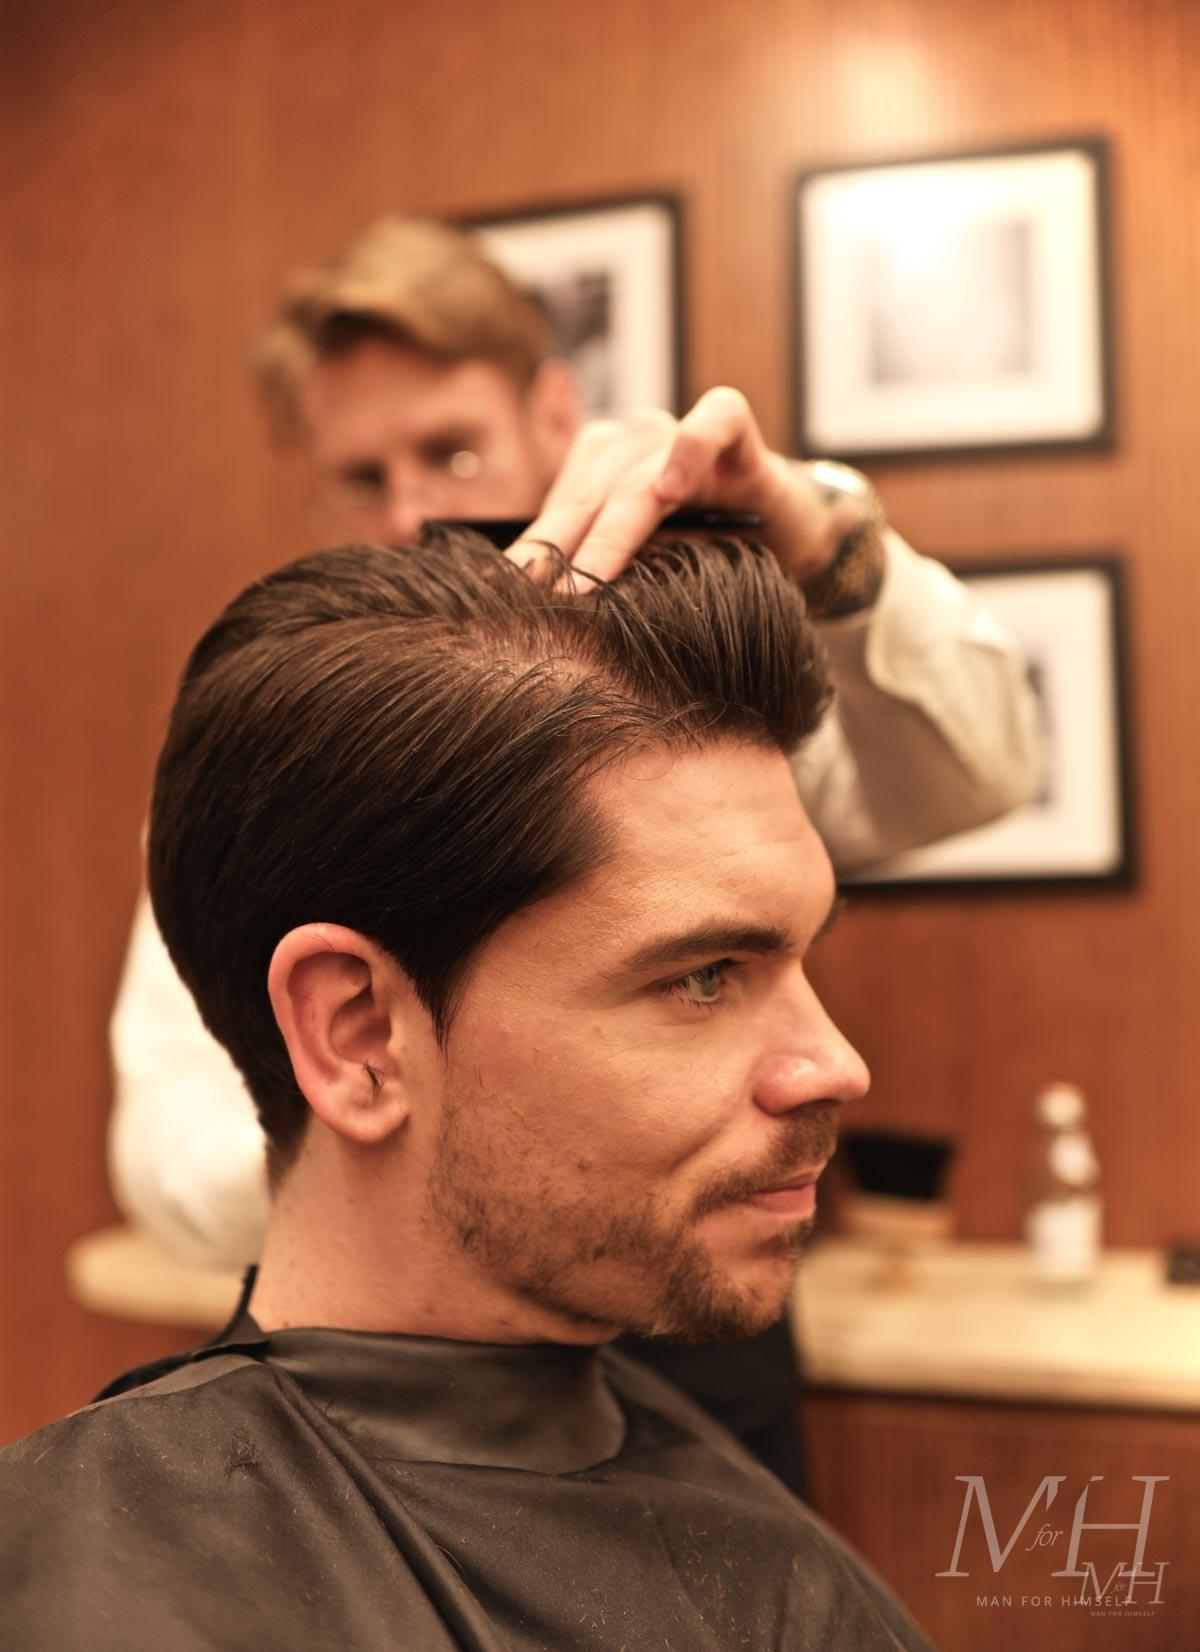 acqua-di-parma-uk-barbershop-man-for-himself-6